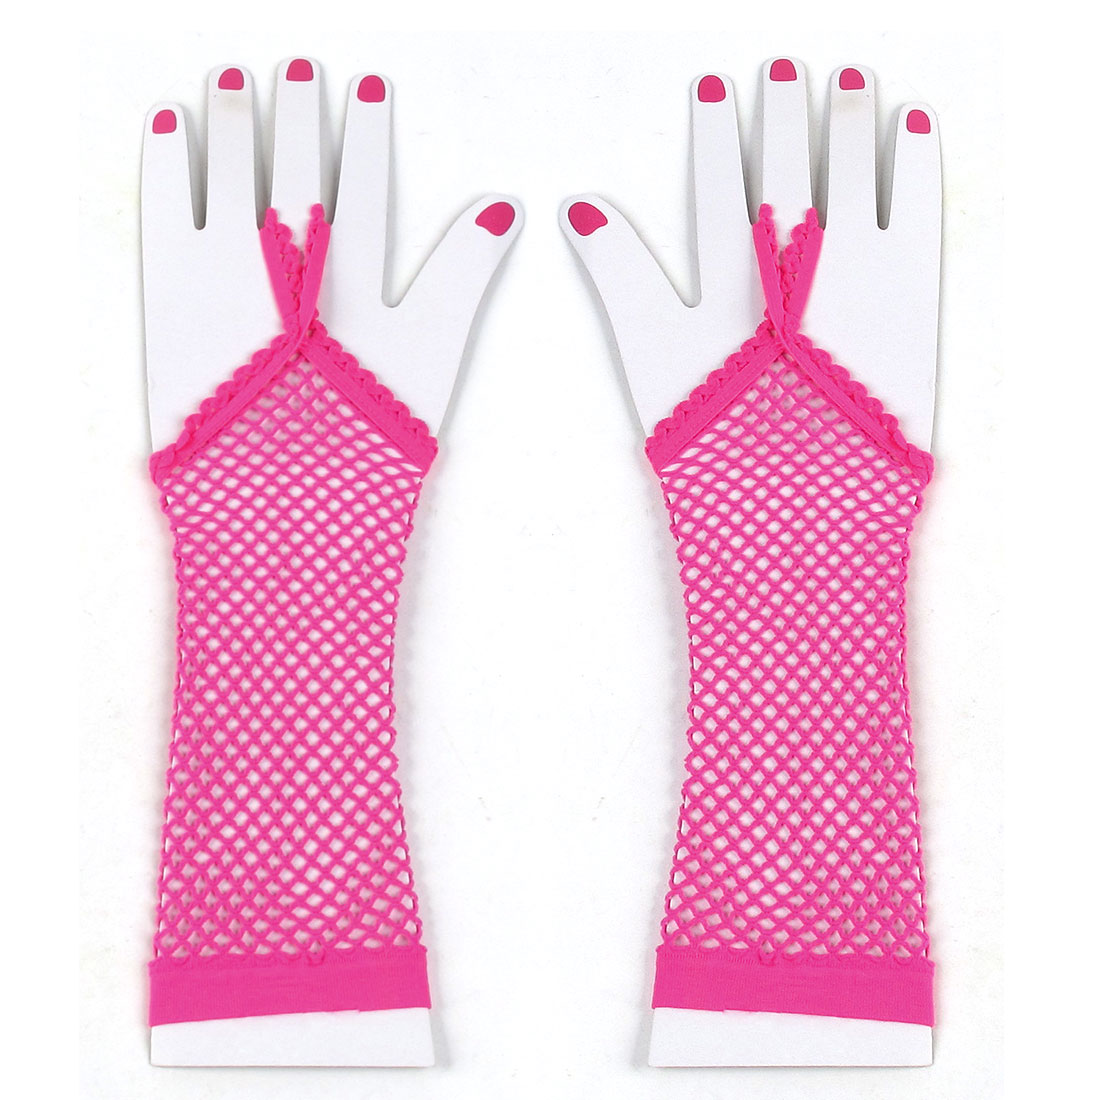 Pair Pink Elastic Mesh Fish Net Elbow Fingerless Goth Arm Warmers for Women